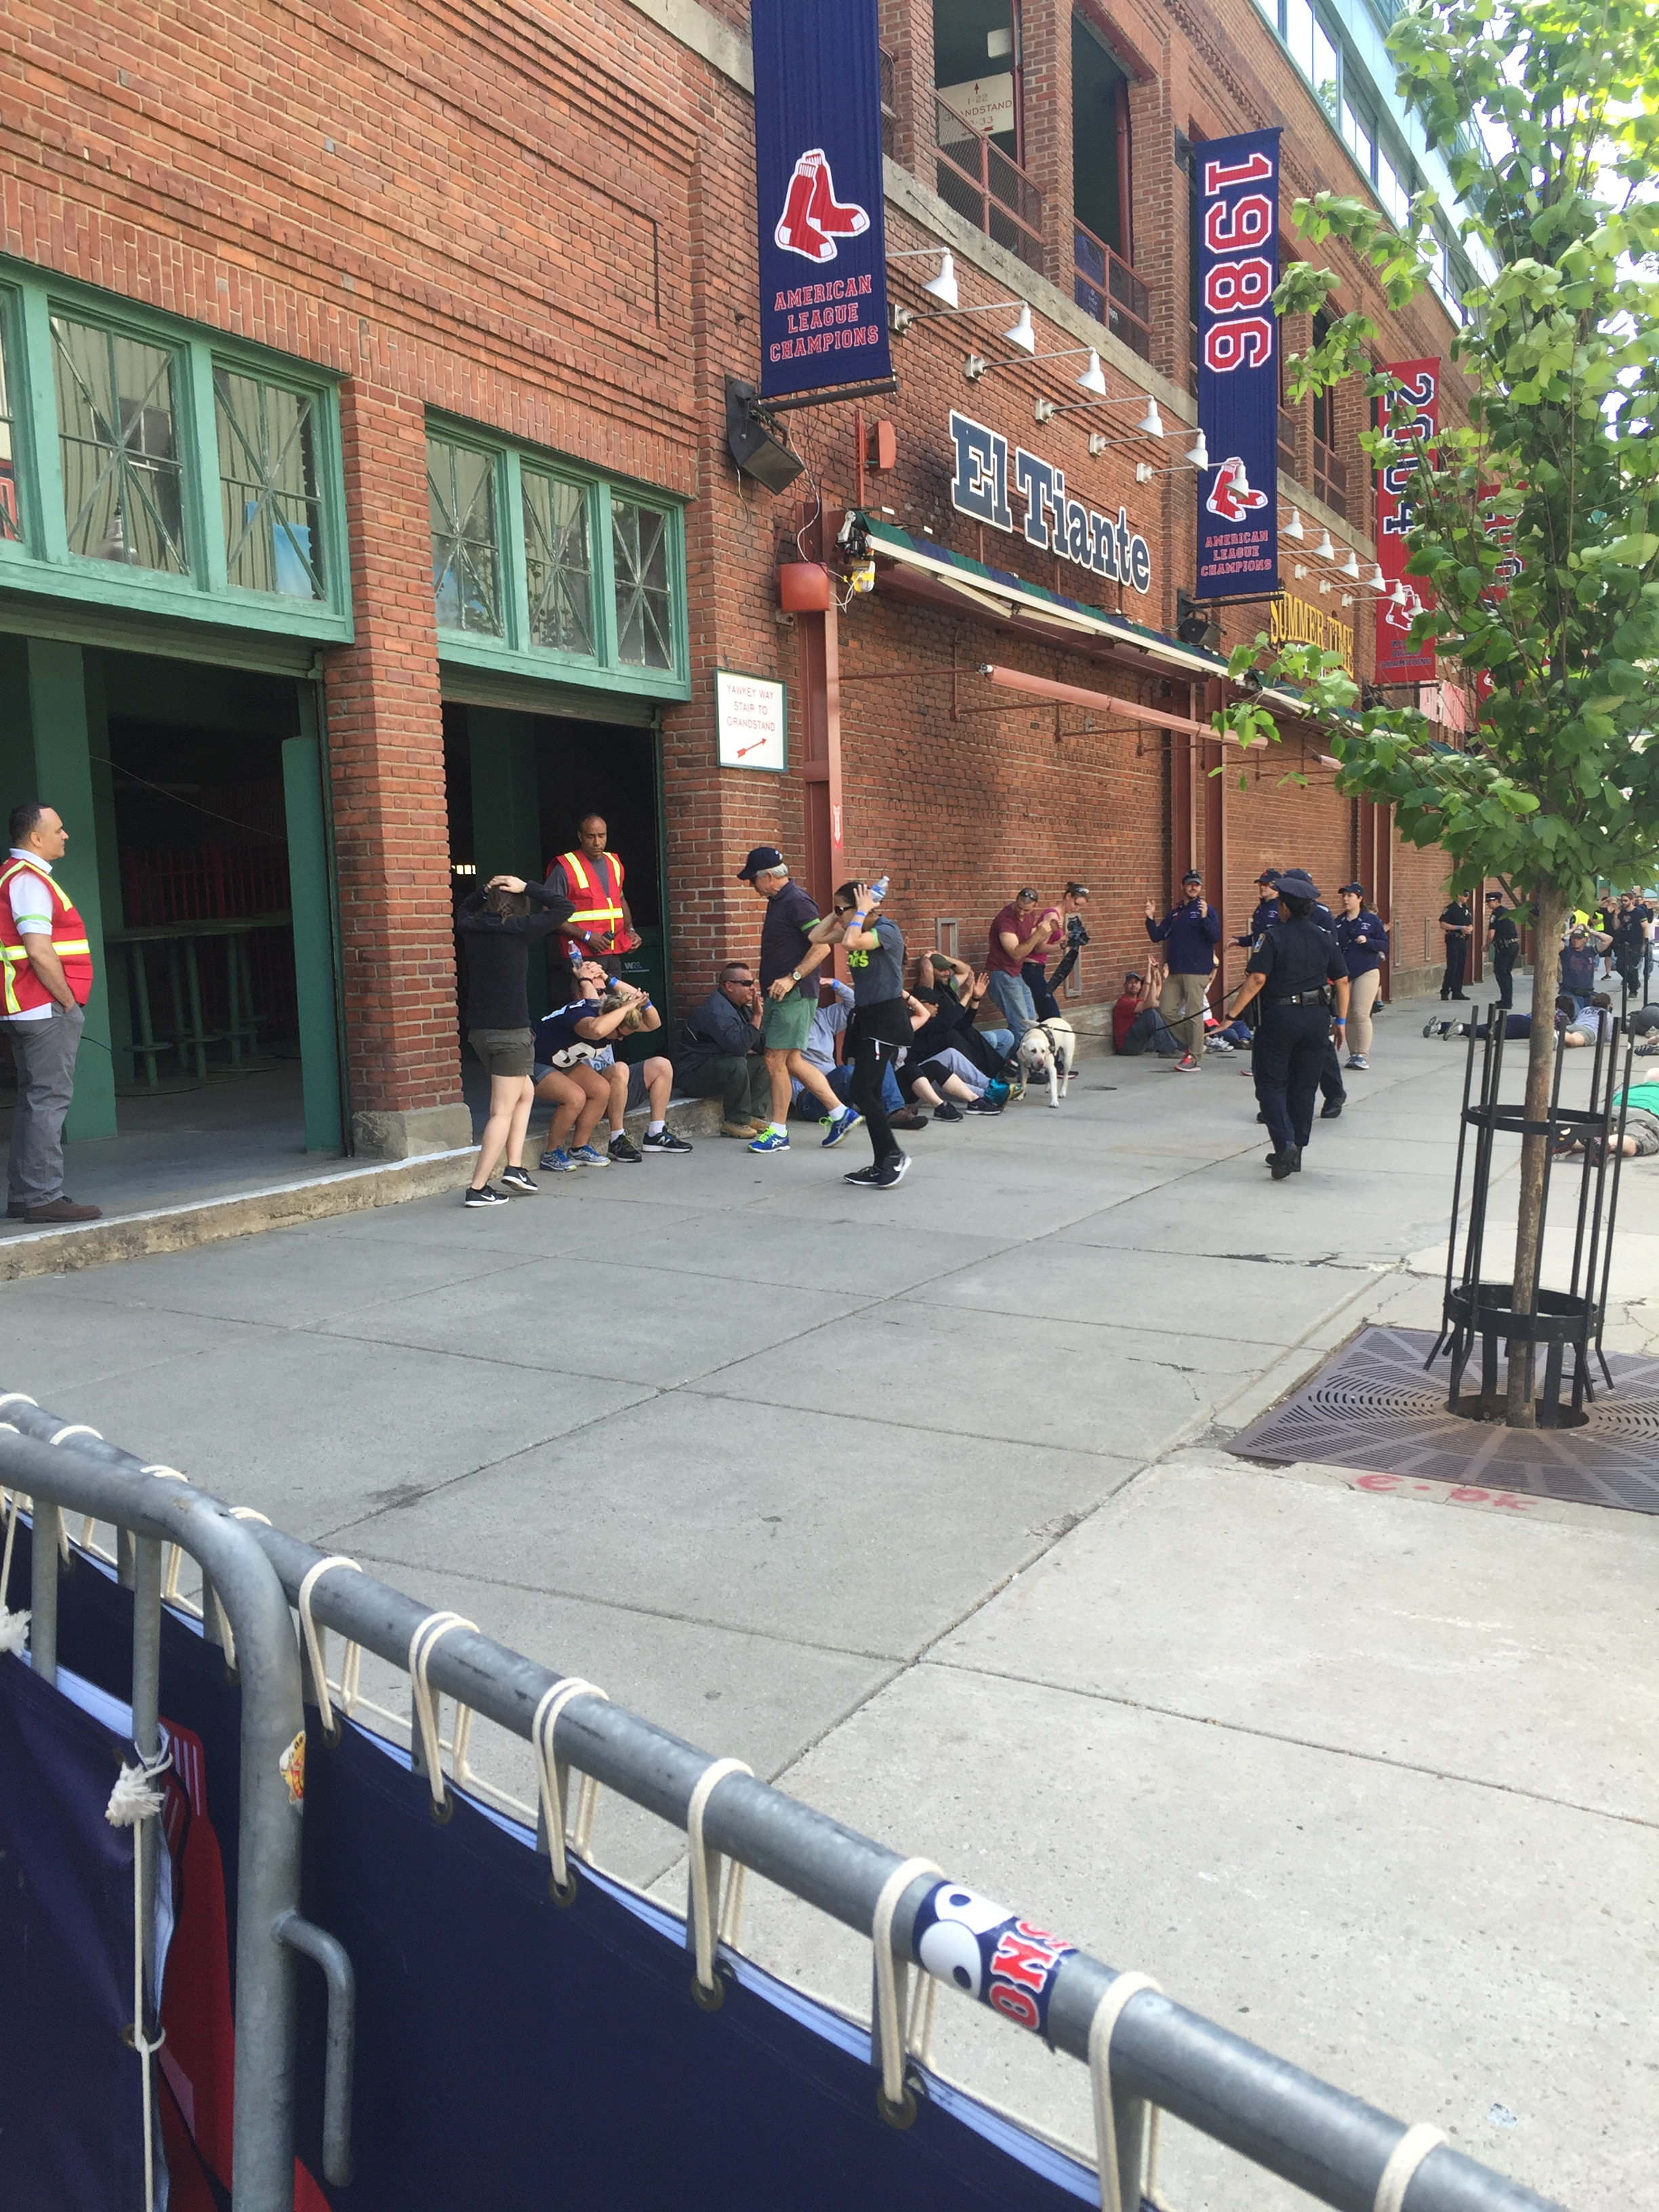 Fenway Park Training Exercise good or bad